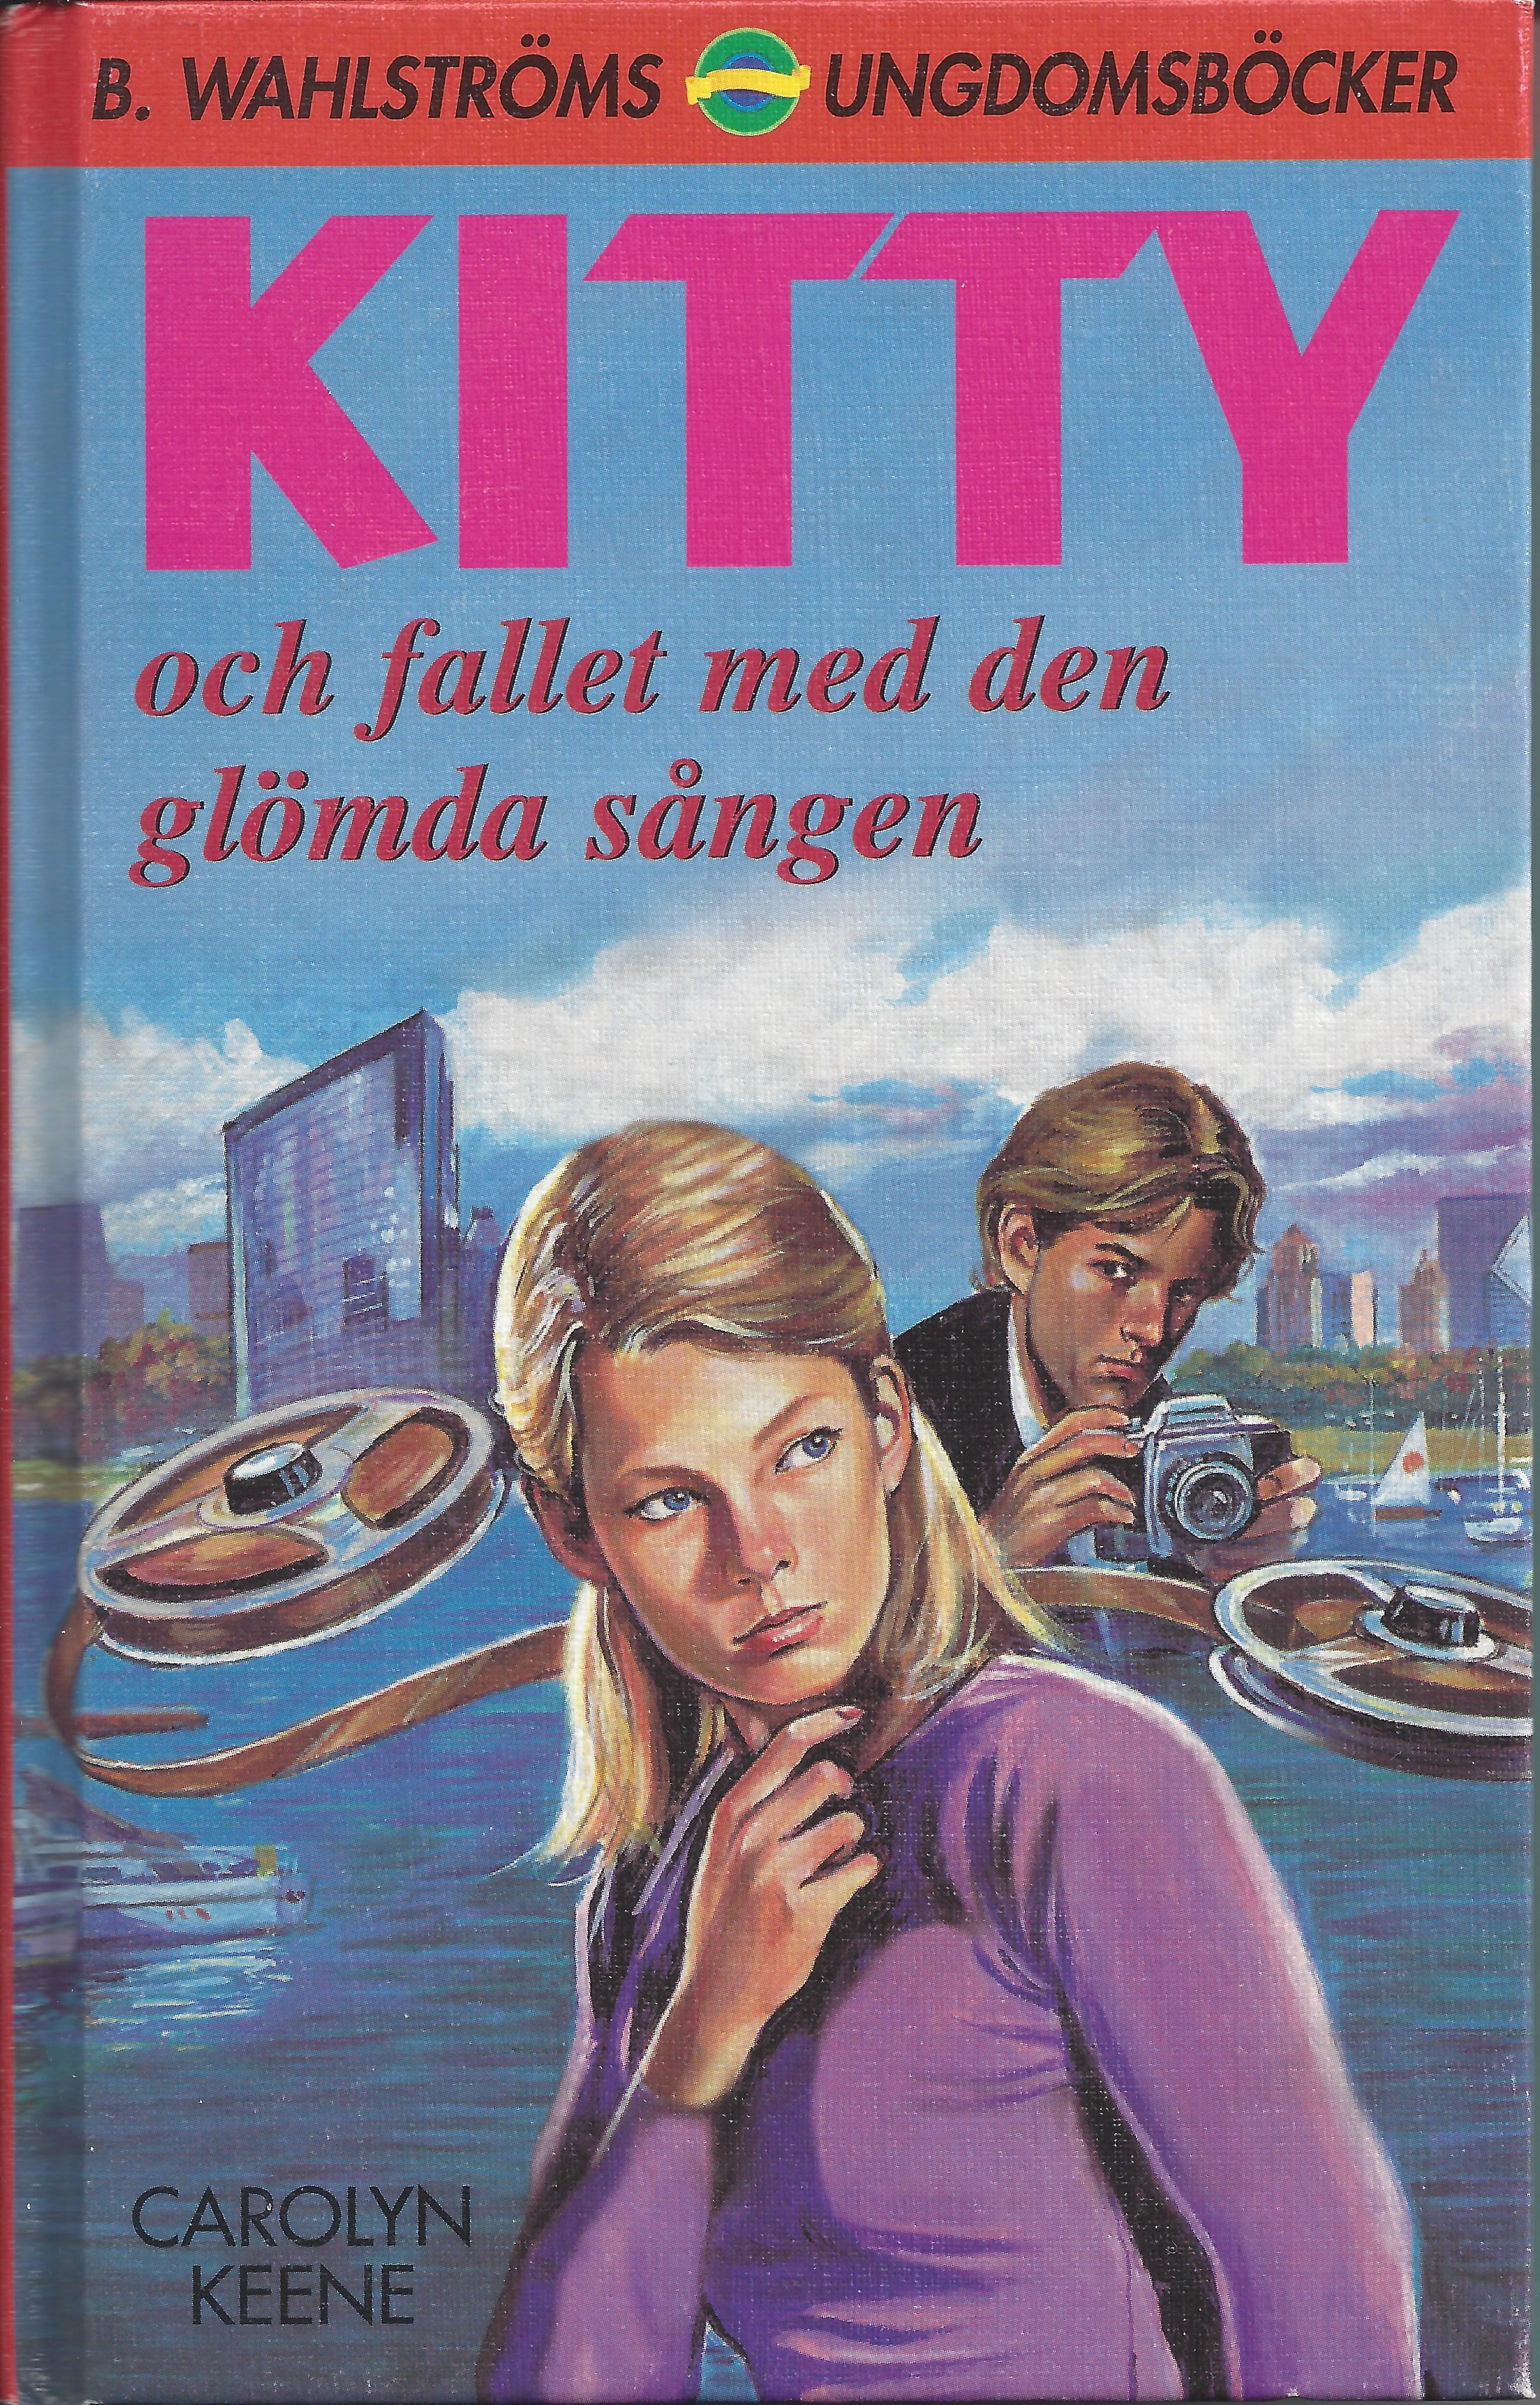 Kitty och fallet med den glömda sången (Nancy Drew Mystery Stories, #162) Carolyn Keene